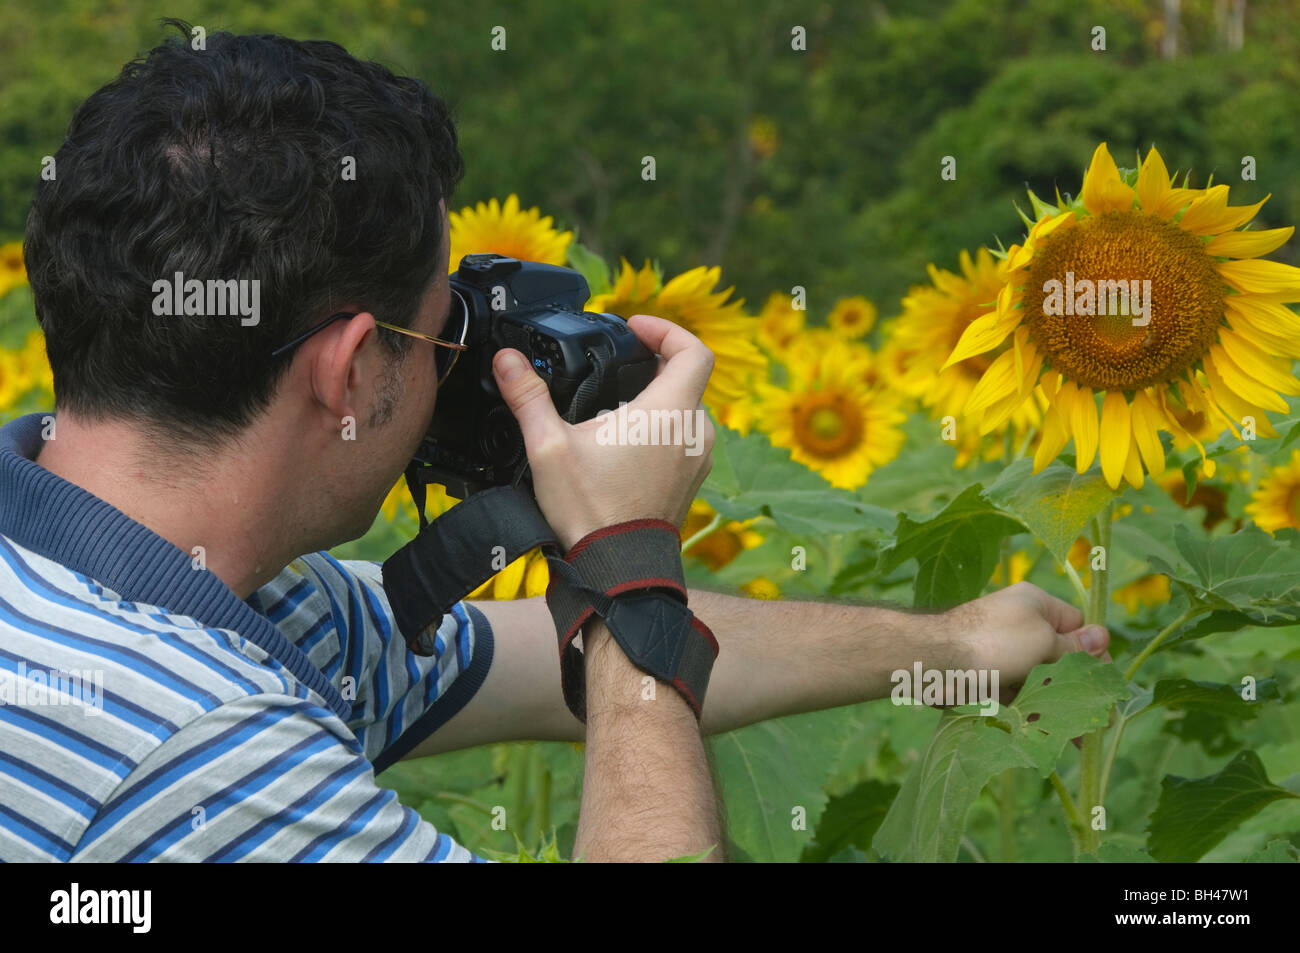 photographer in colorful sunflower fields near Saraburi Thailand - Stock Image